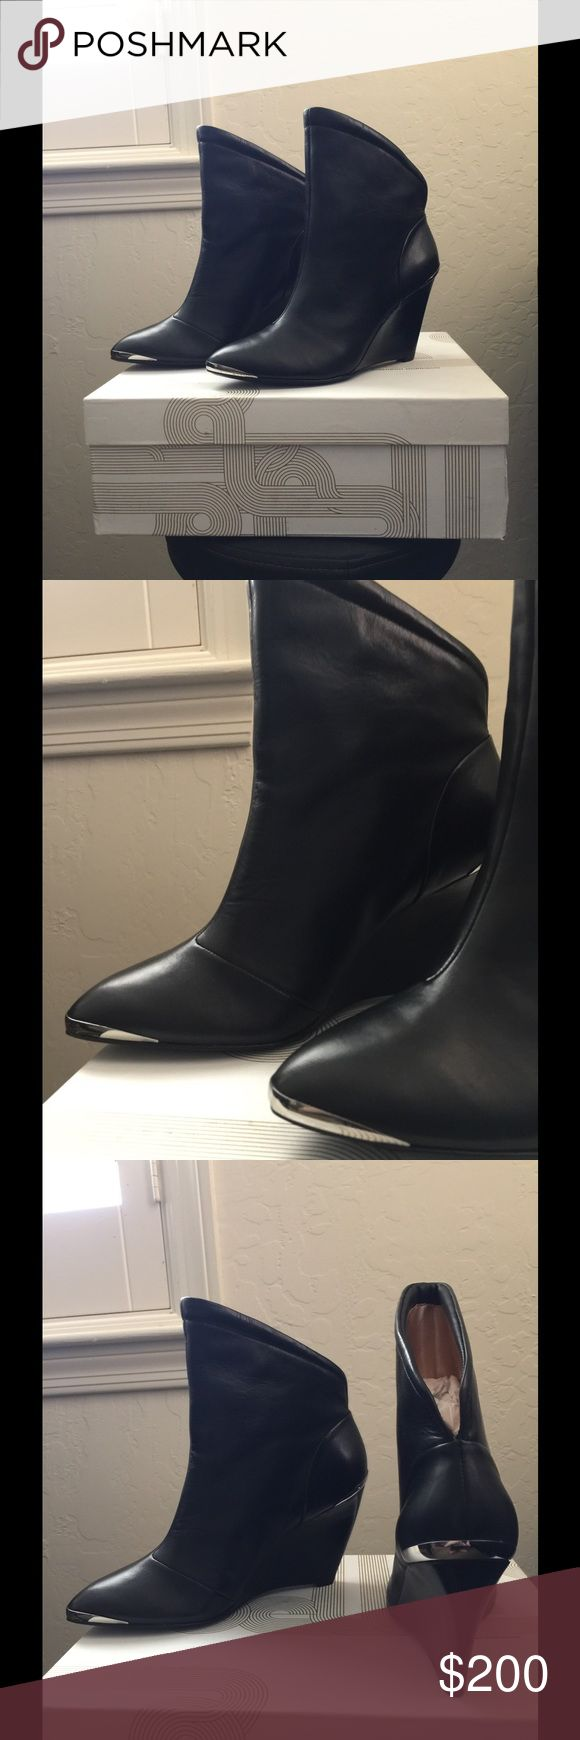 Belle by Sigerson Morrison boots 6611 These gorgeous black leather Sigerson Morrison boots have never been worn! Very rock n roll with silver details on the toe and heel. These hard find booties come from a smoke free home. Belle by Sigerson Morrison Shoes Ankle Boots & Booties